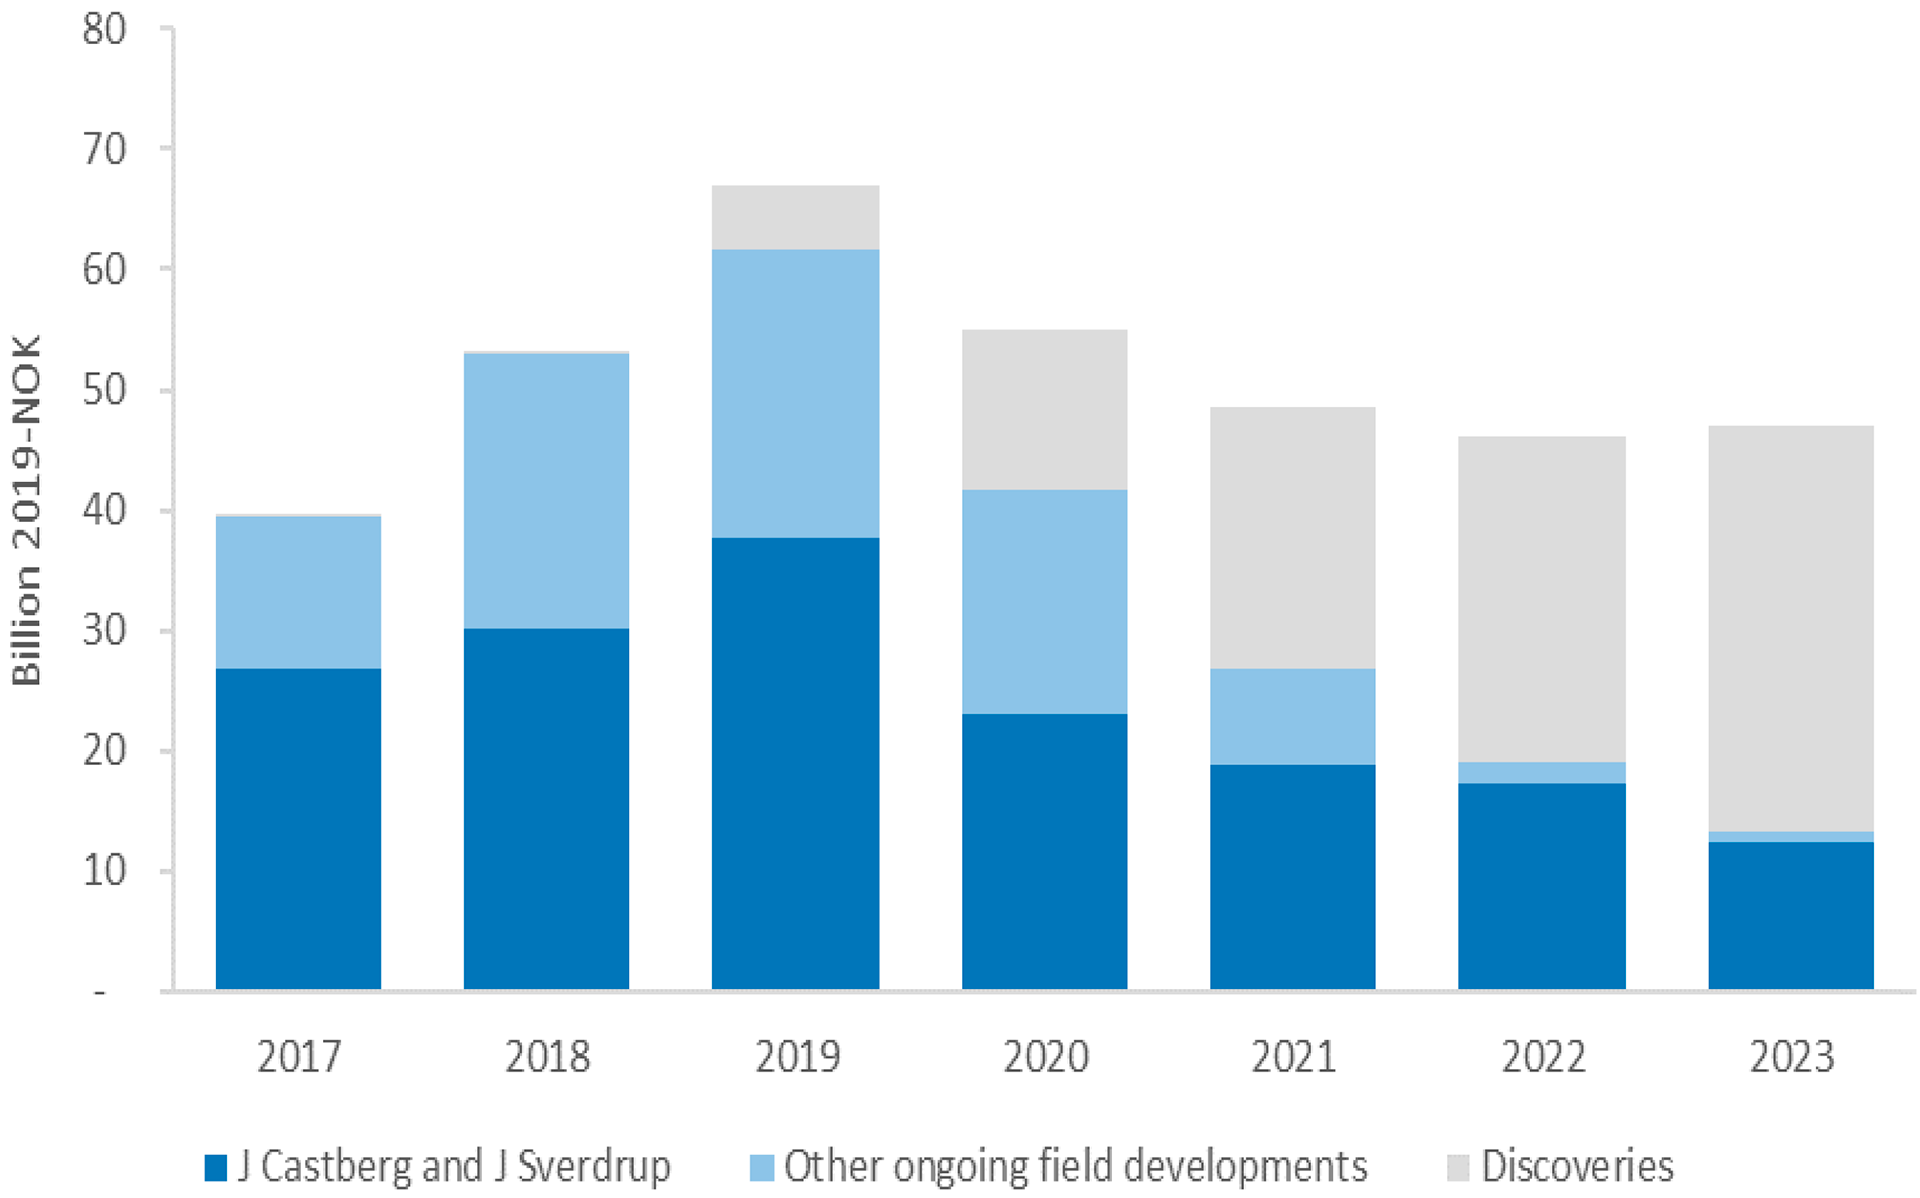 Figure 1-3 Overall investments in ongoing and new field development projects